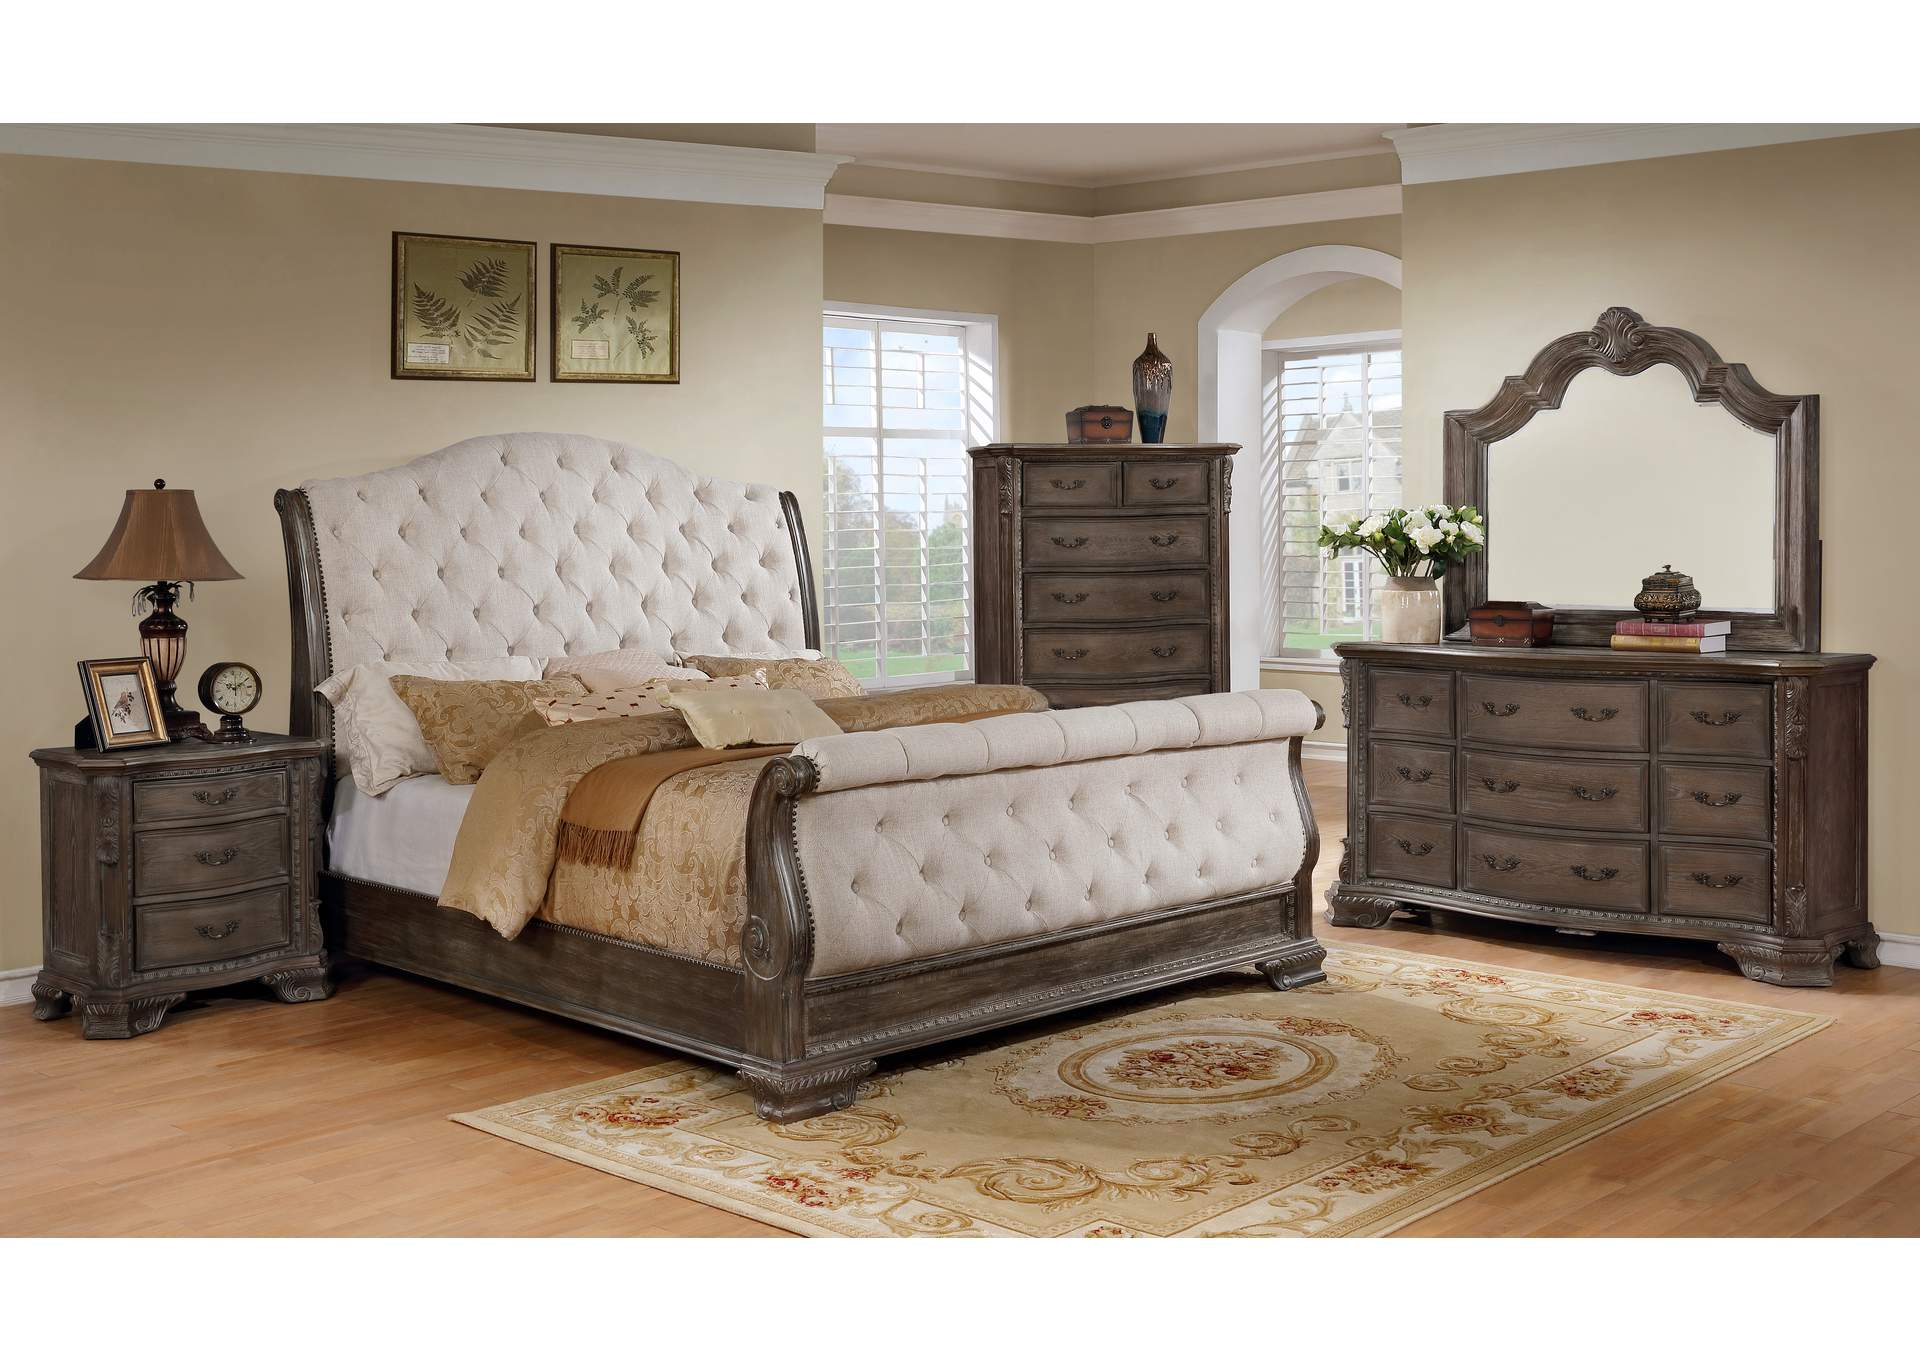 paint amazing design crystal column velvet ideas nightstands gray bed sleigh walls black and search mirror tufted lamps ivory chandelier color gold goodness